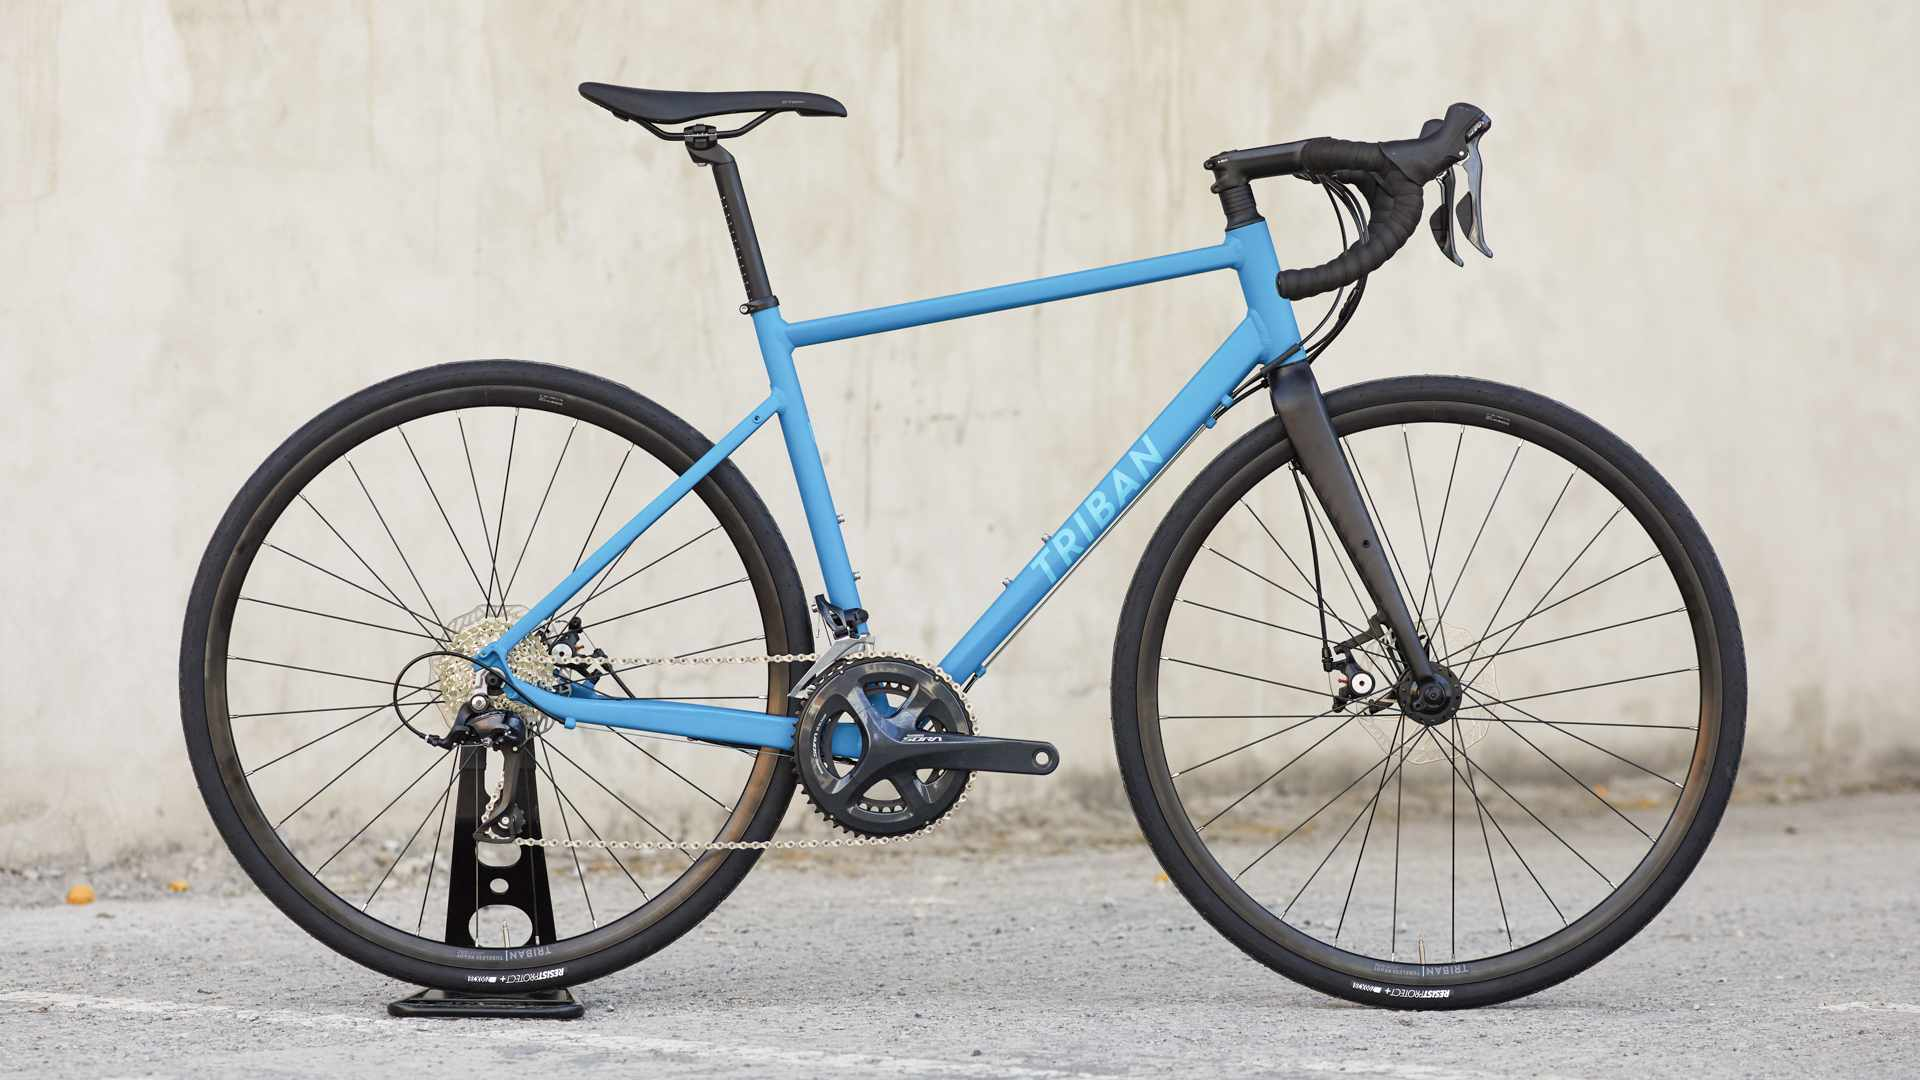 The new Triban RC500 is remarkably inexpensive and comes in a very fetching shade of blue